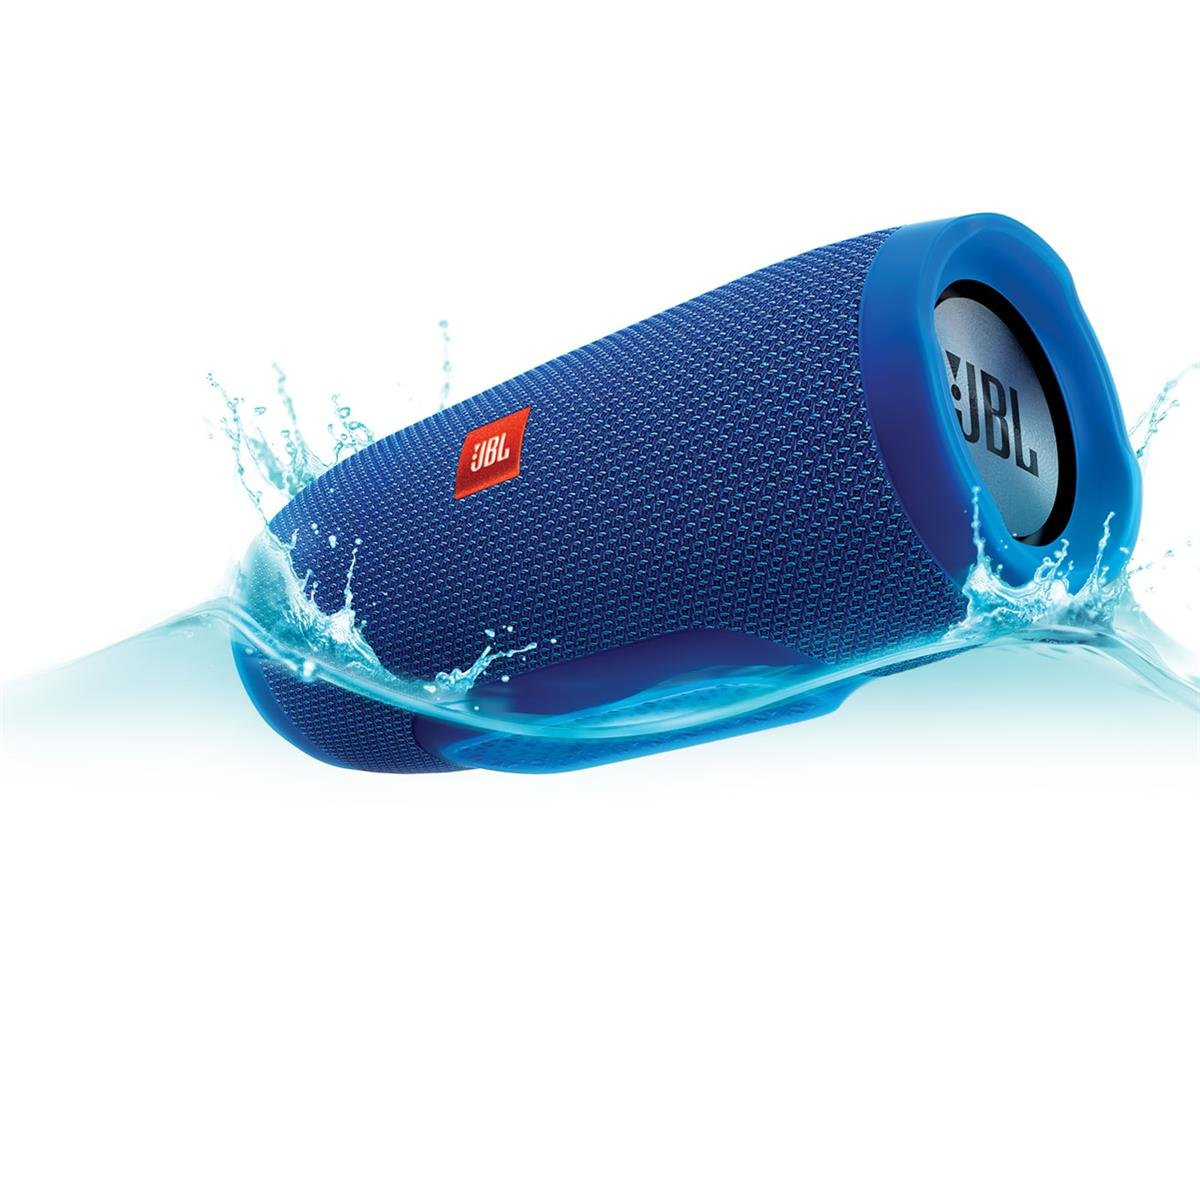 JBL Charge 3 Waterproof Bluetooth Speaker -Blue (Certified Refurbished) by JBL (Image #5)